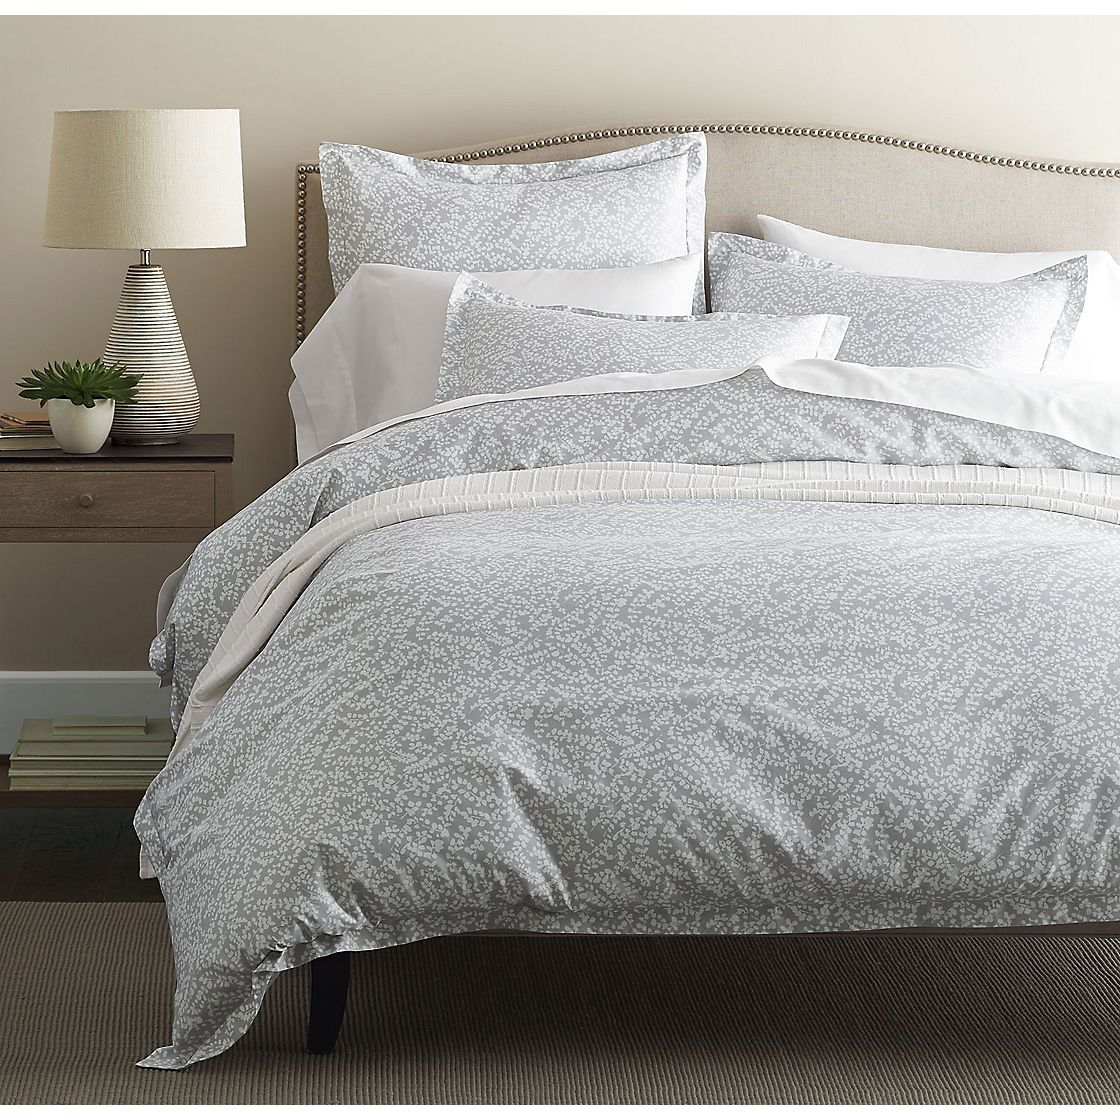 Legends Willow Gray Sateen Duvet Cover The Company Store